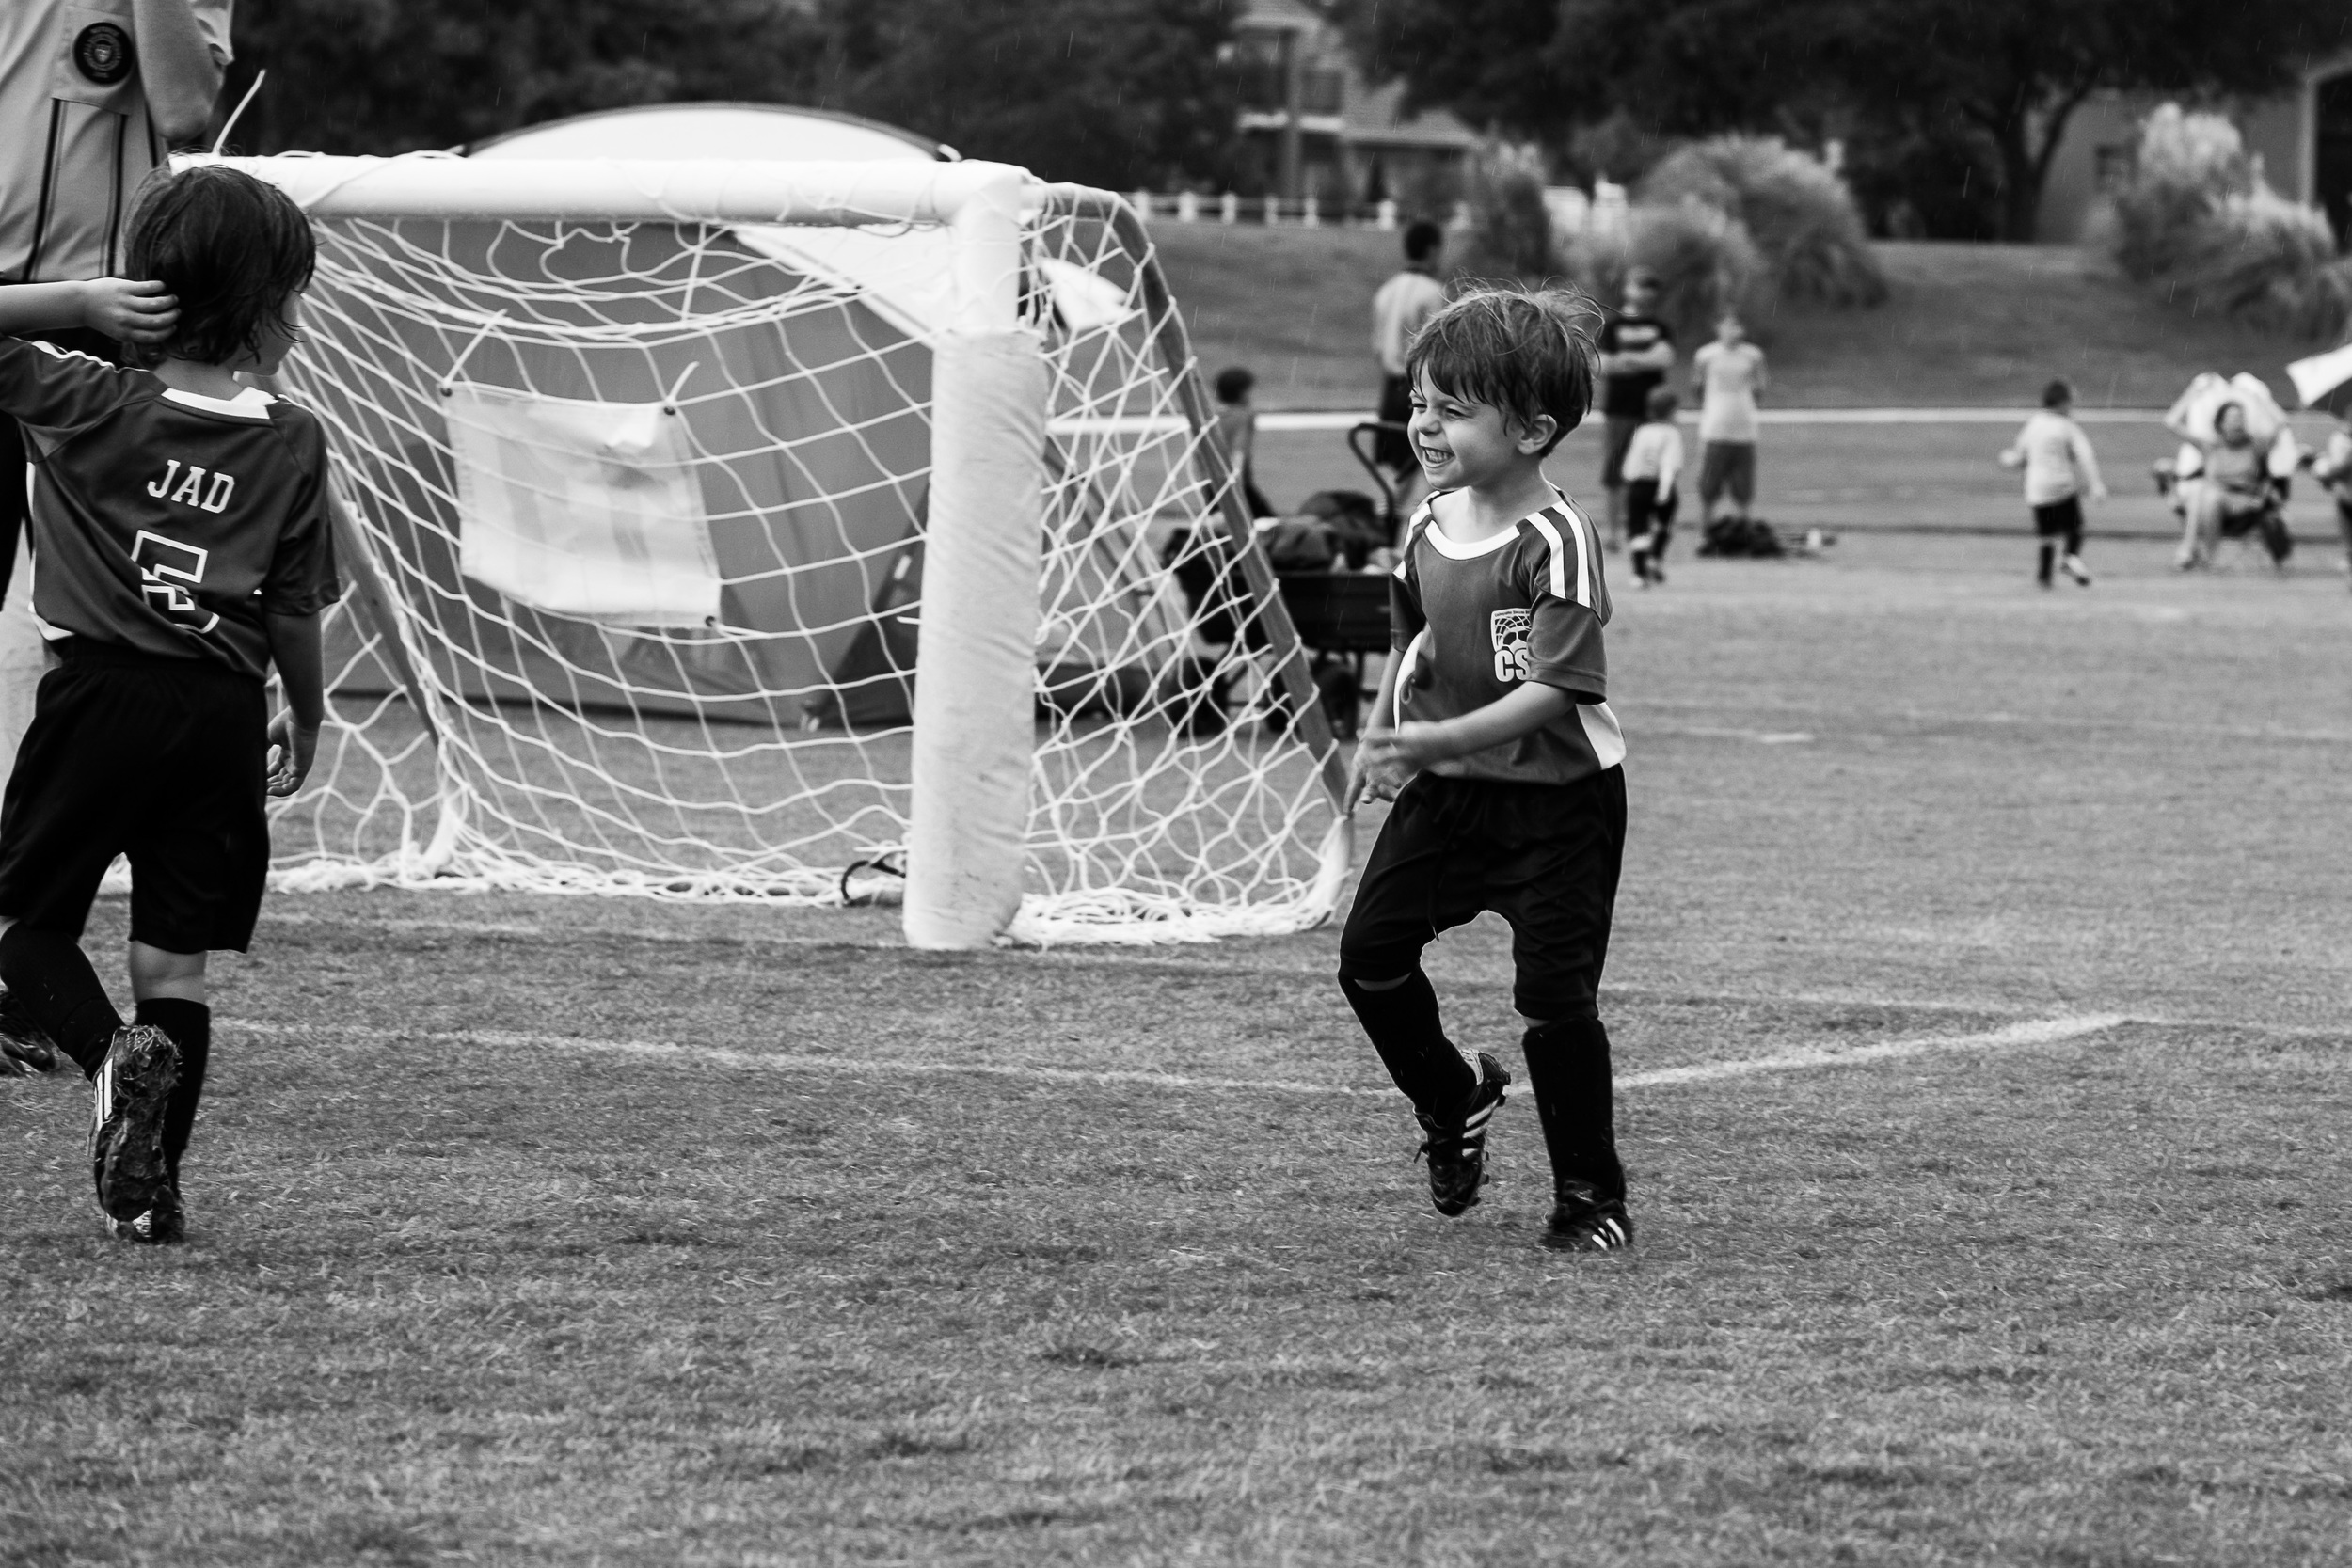 When you're three and you're playing soccer in the rain, you might just believe that life can't get any better than this.